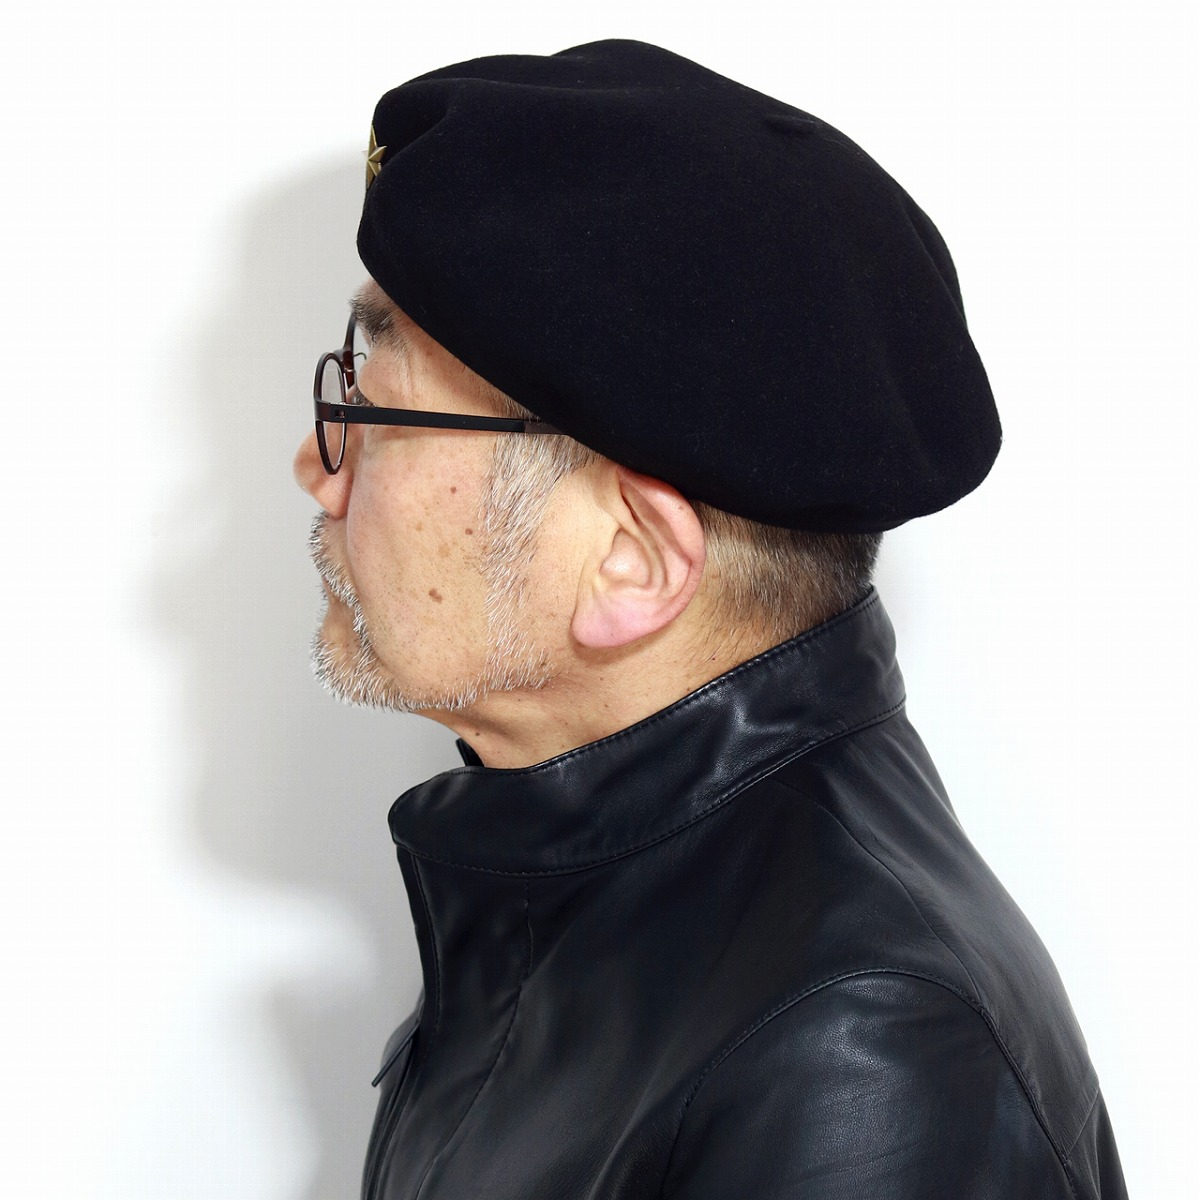 Shin pull laurel beret black black made in Basque beret France with the  beret Che Guevara recreation model star hat men Laulhere beret low rail box